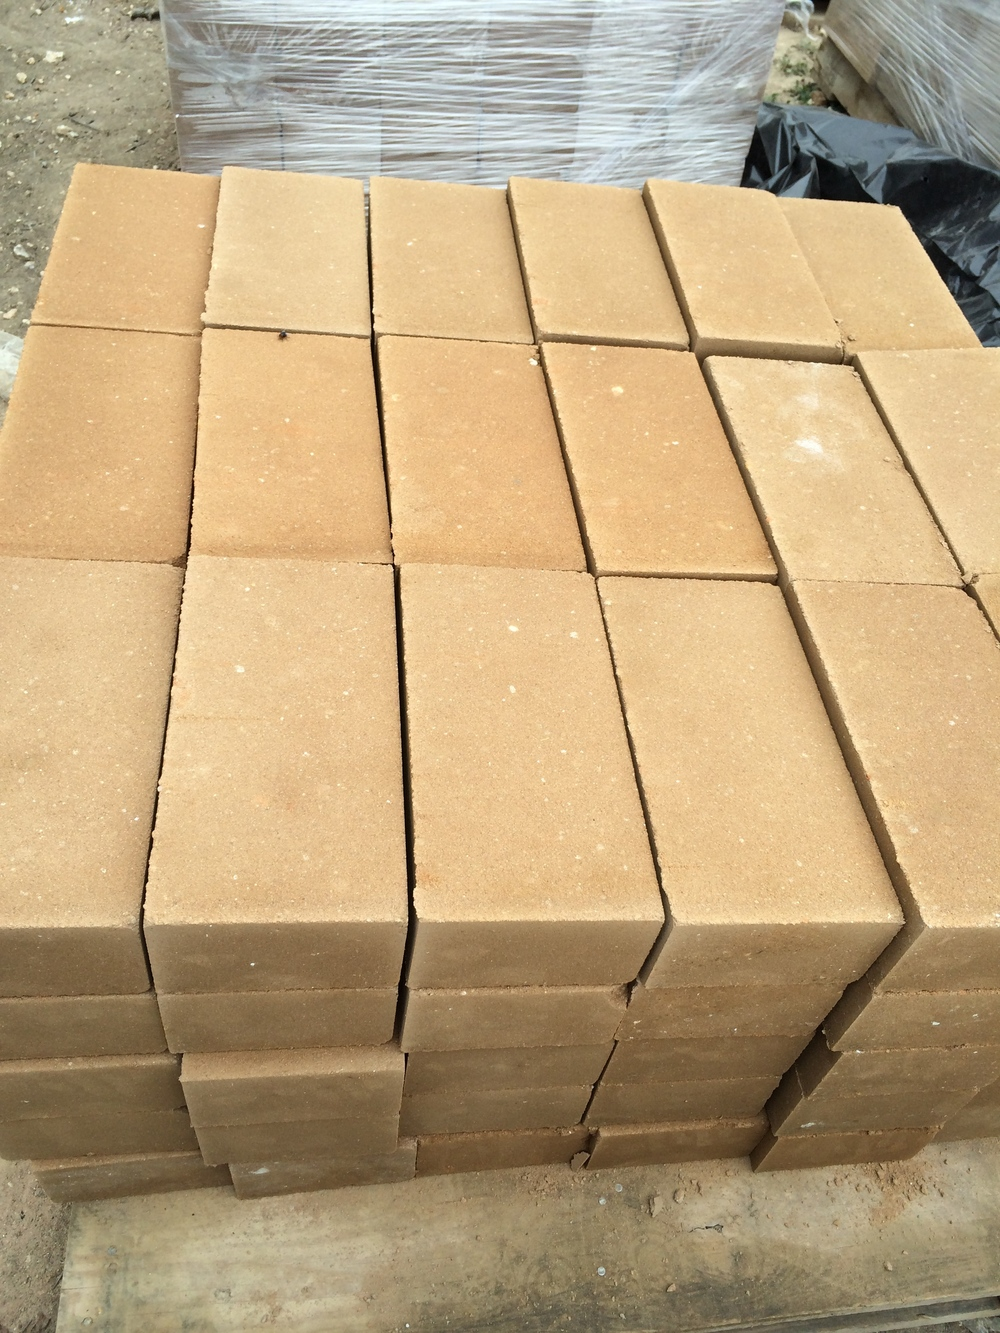 Freshly made blocks are placed on pallets for curing